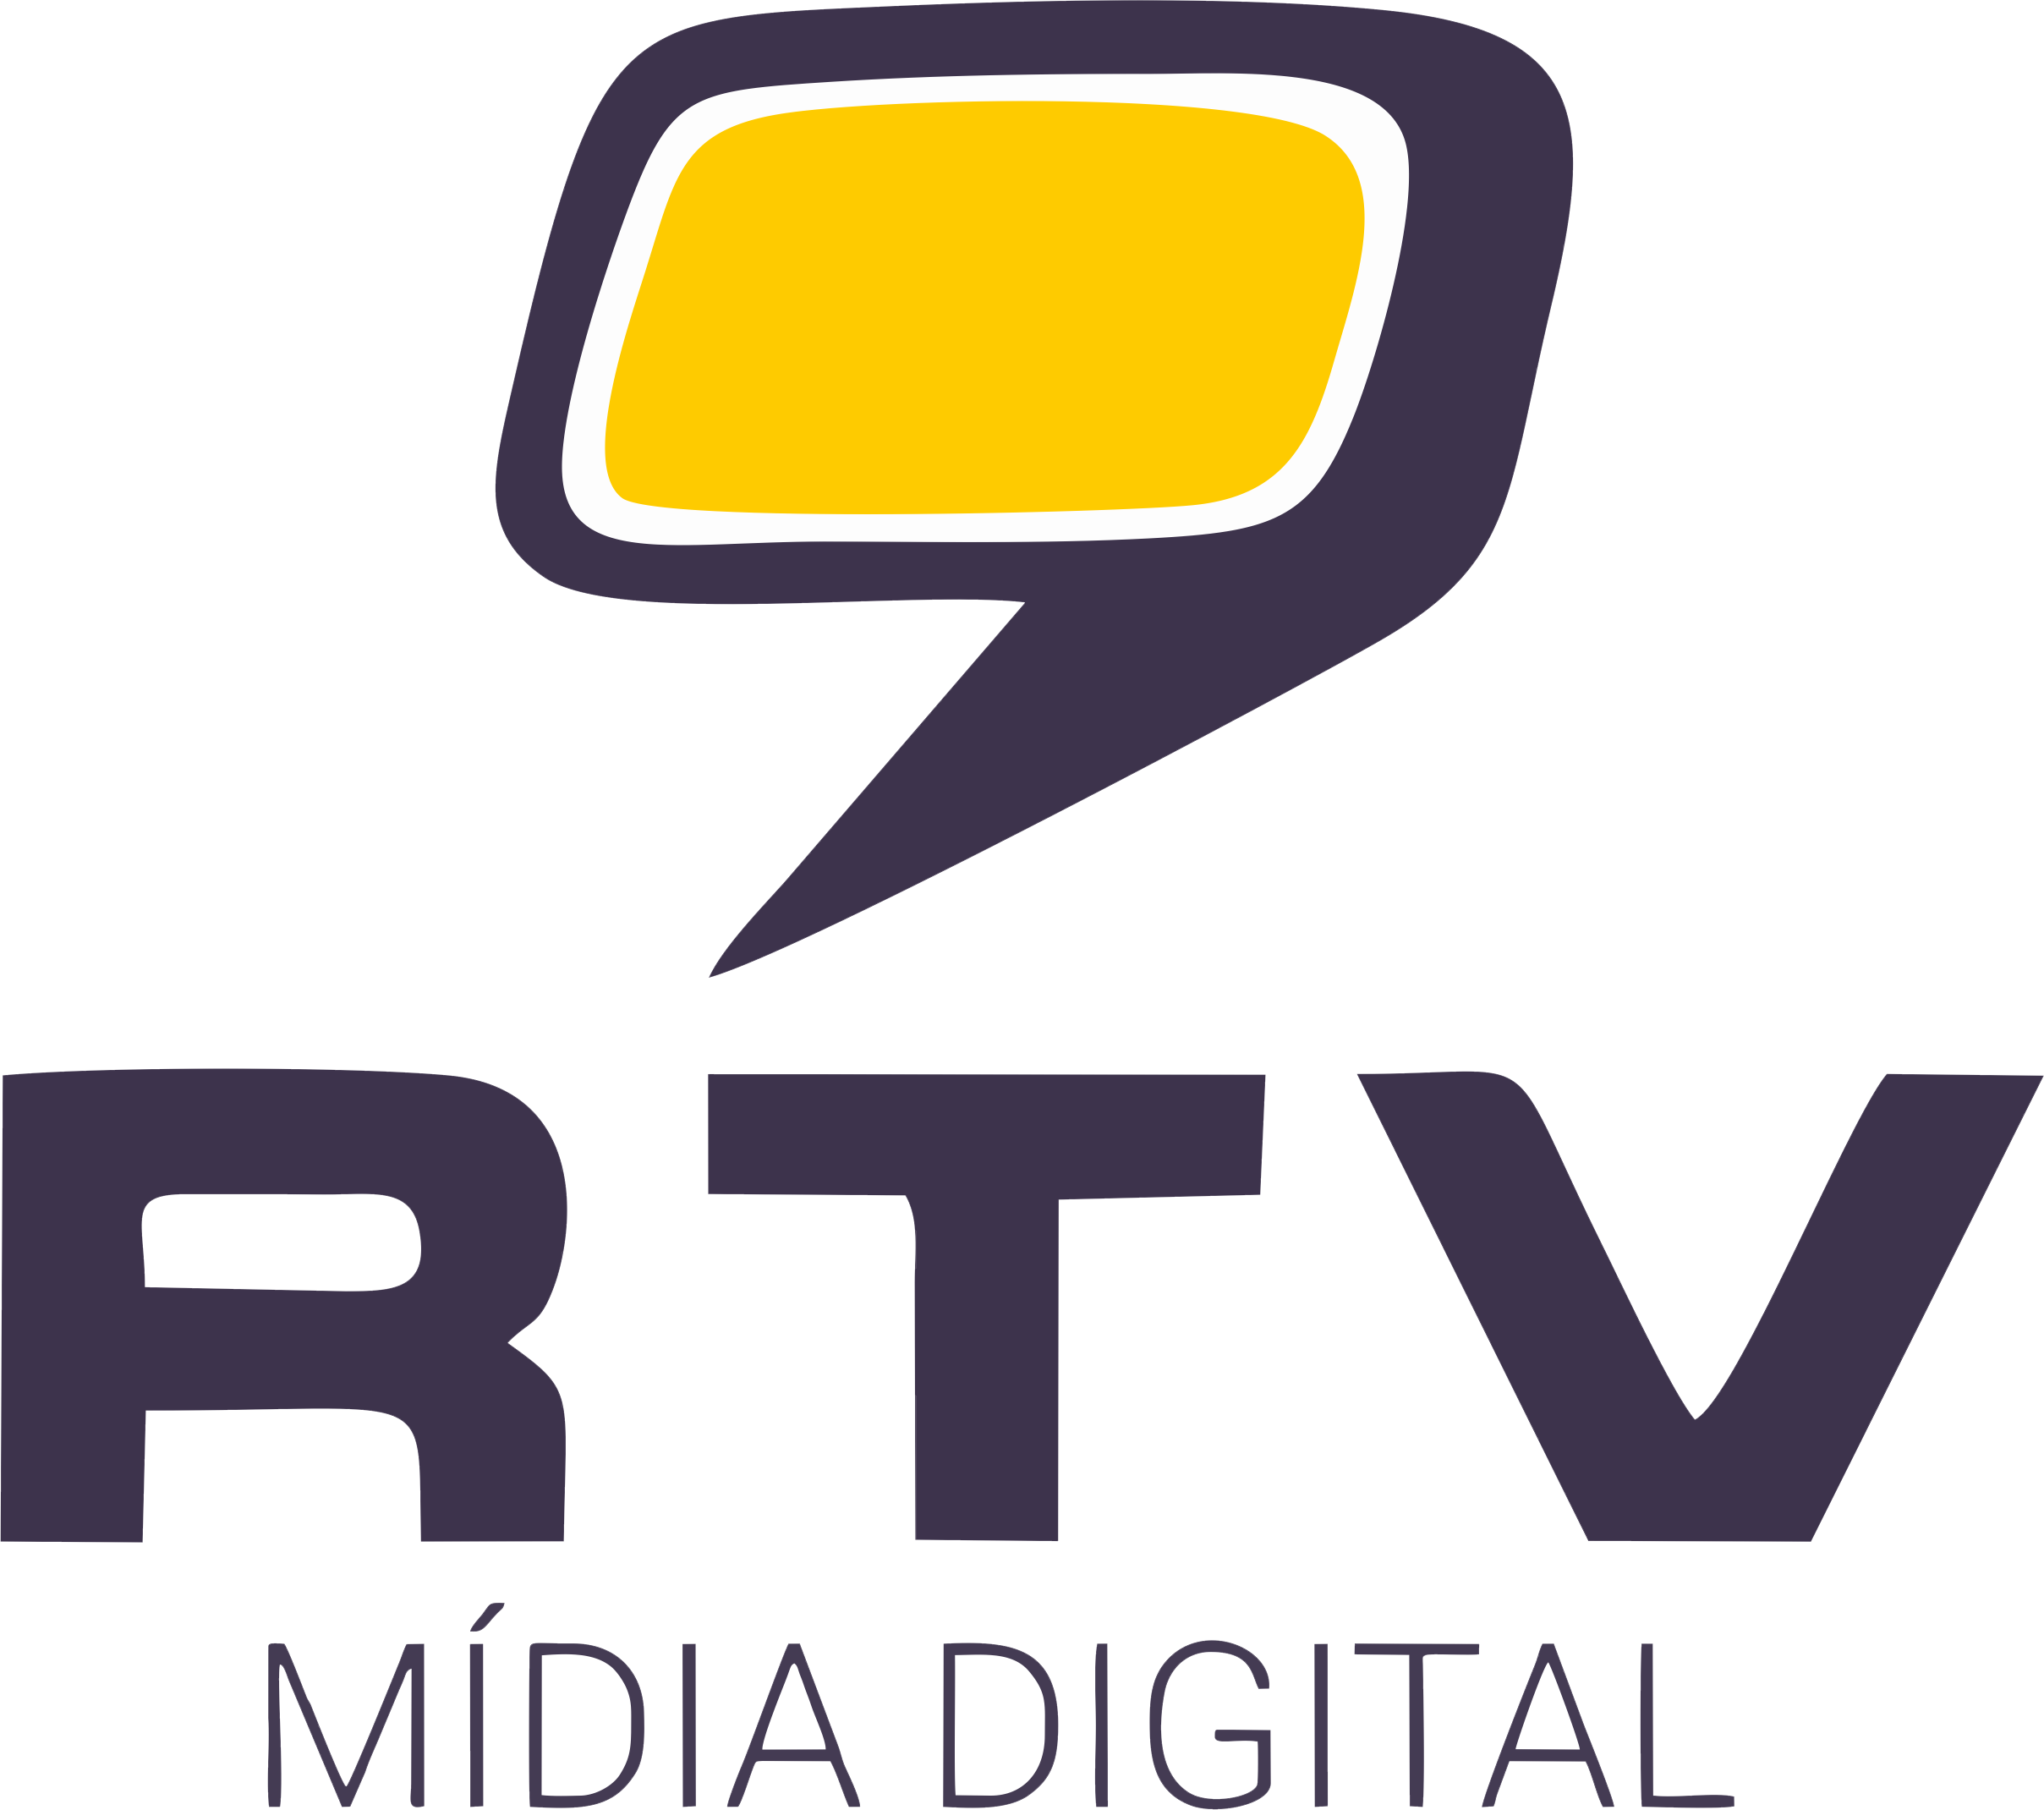 RTV Mídia Digital